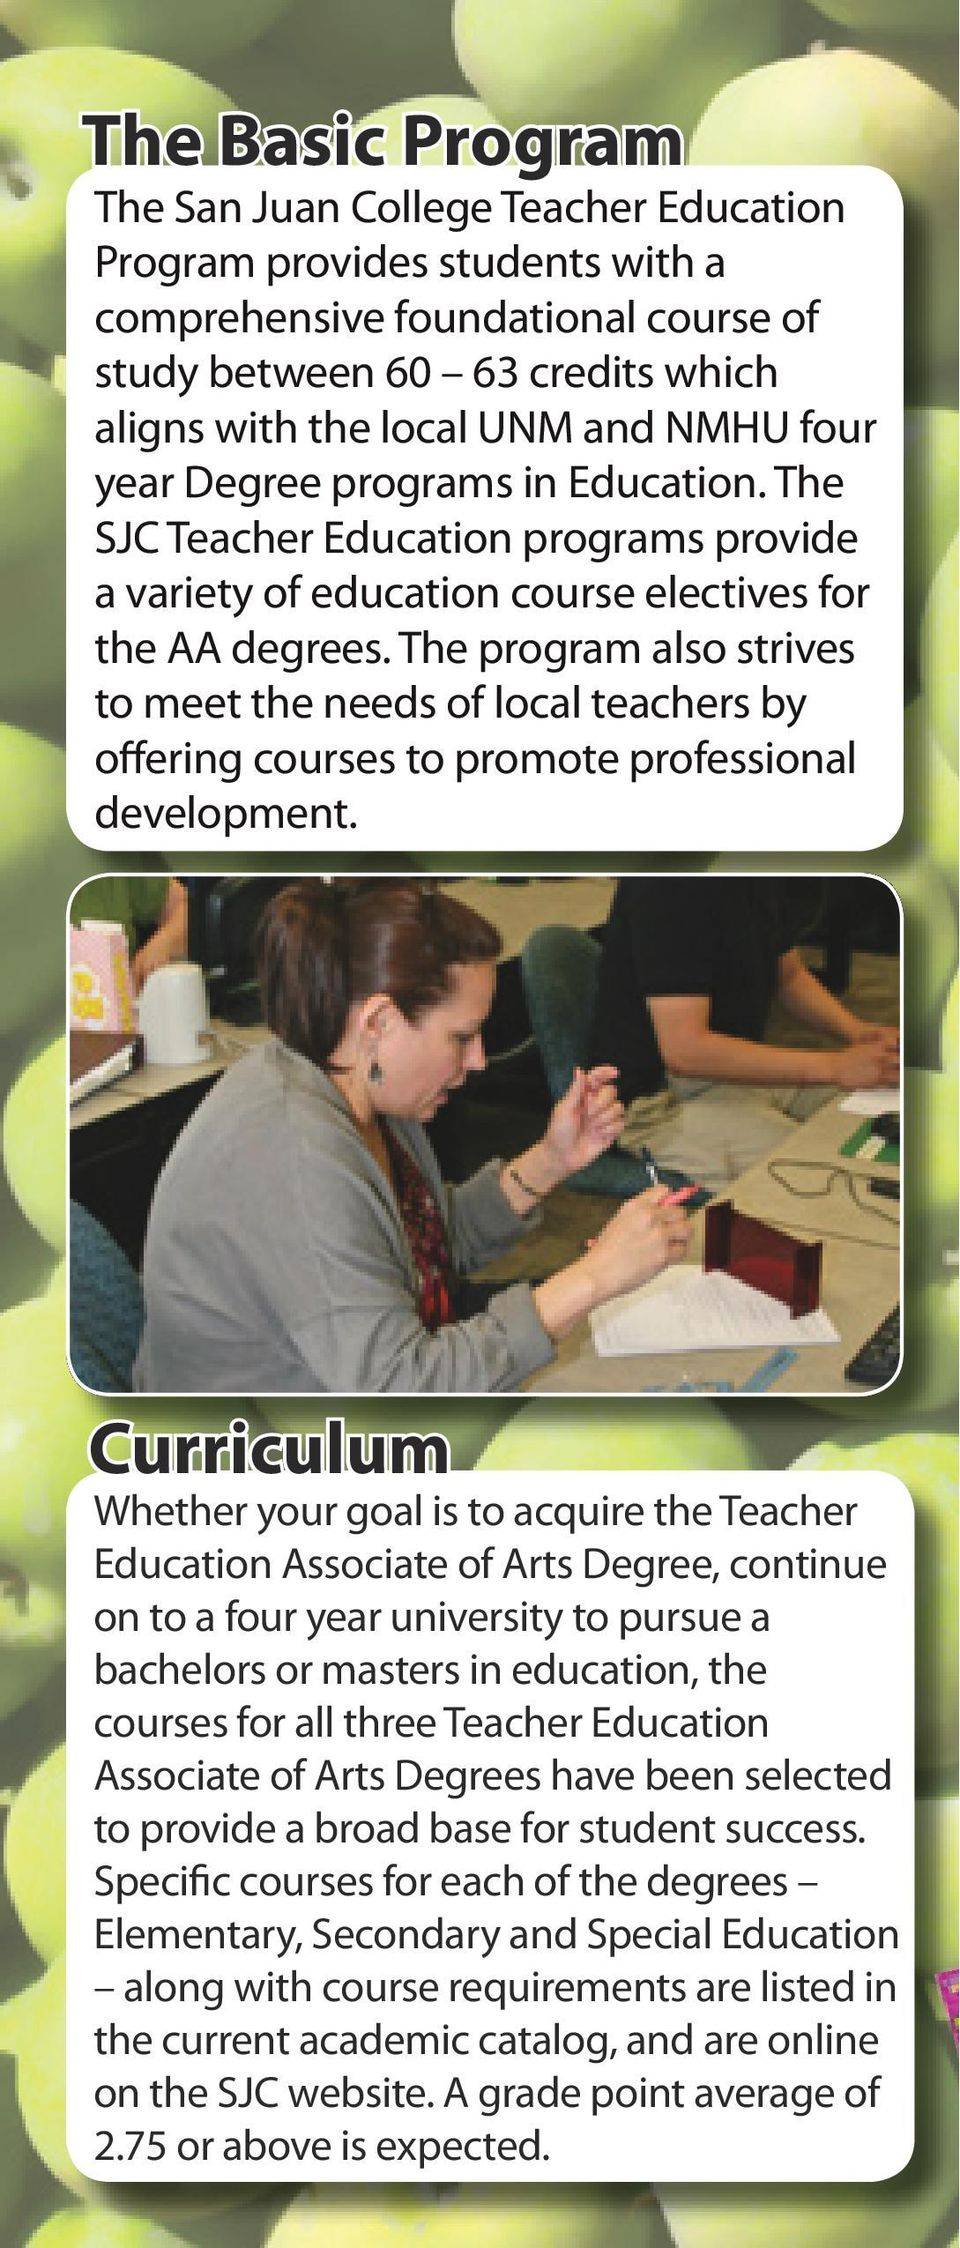 The program also strives to meet the needs of local teachers by offering courses to promote professional development.